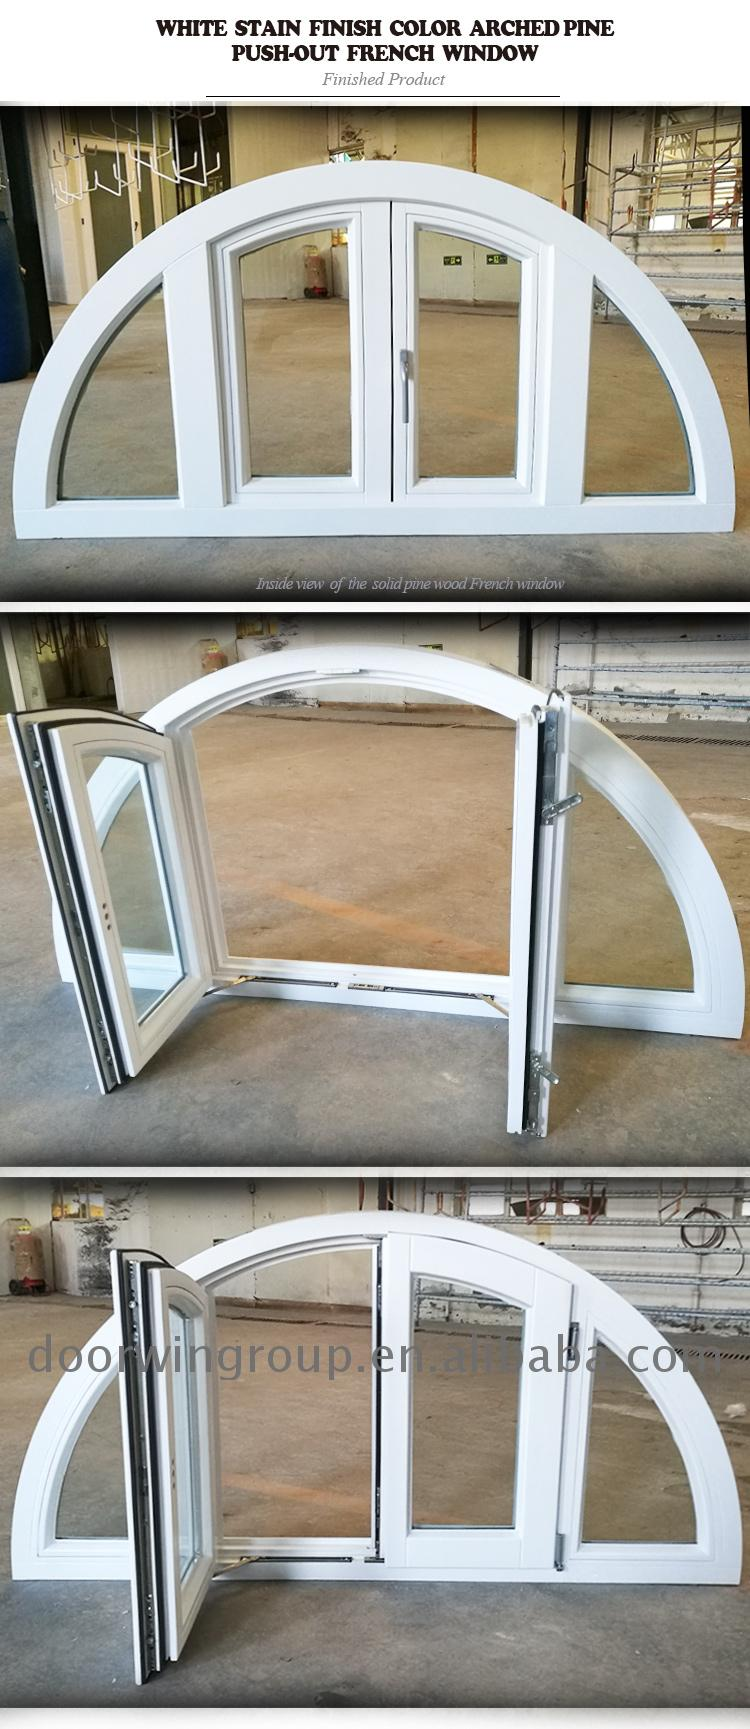 Factory outlet round double glazed windows for sale bay window replacing crank on casement